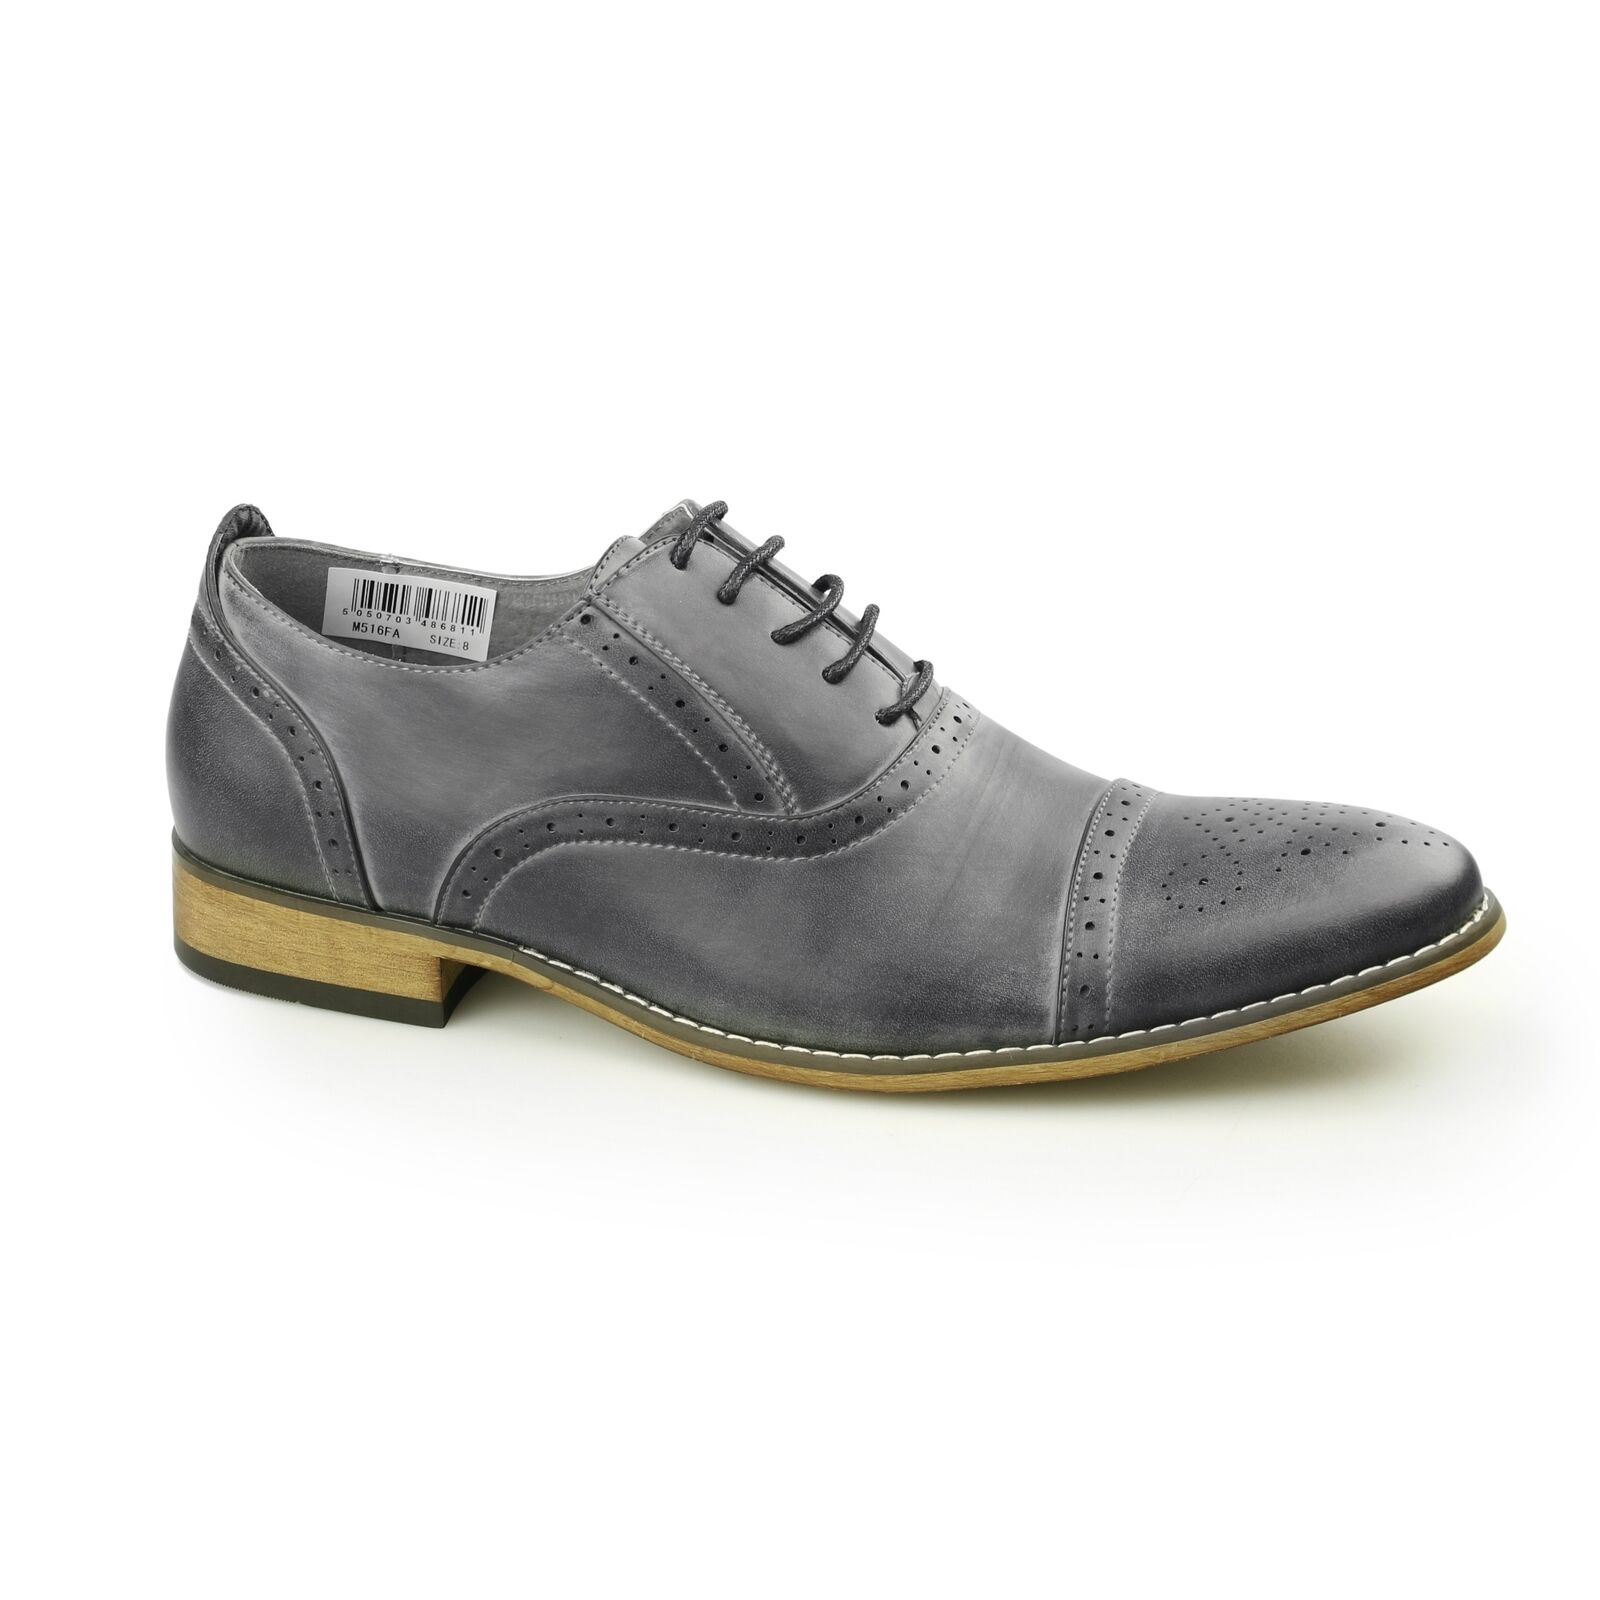 Goor ISAAC Mens PU Synthetic Leather Lace Up Formal Oxford Brogue Shoes Grey